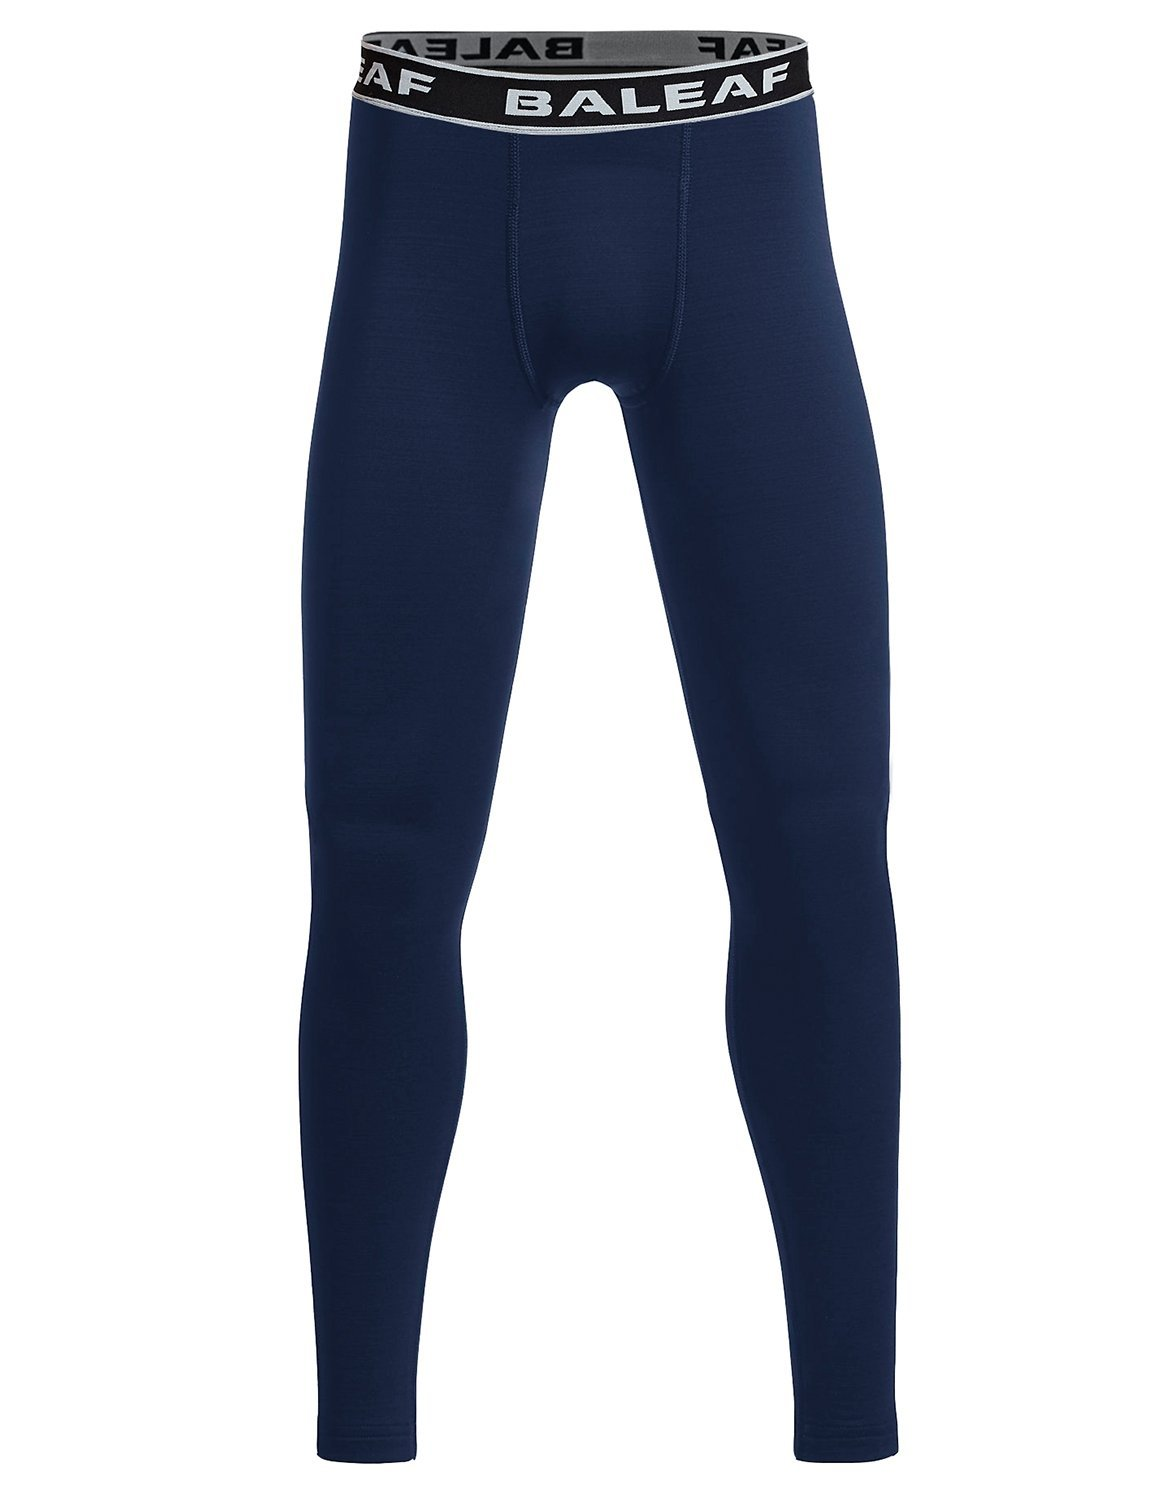 Baleaf Youth Boys' Compression Thermal Baselayer Tights Fleece Leggings Navy Size S